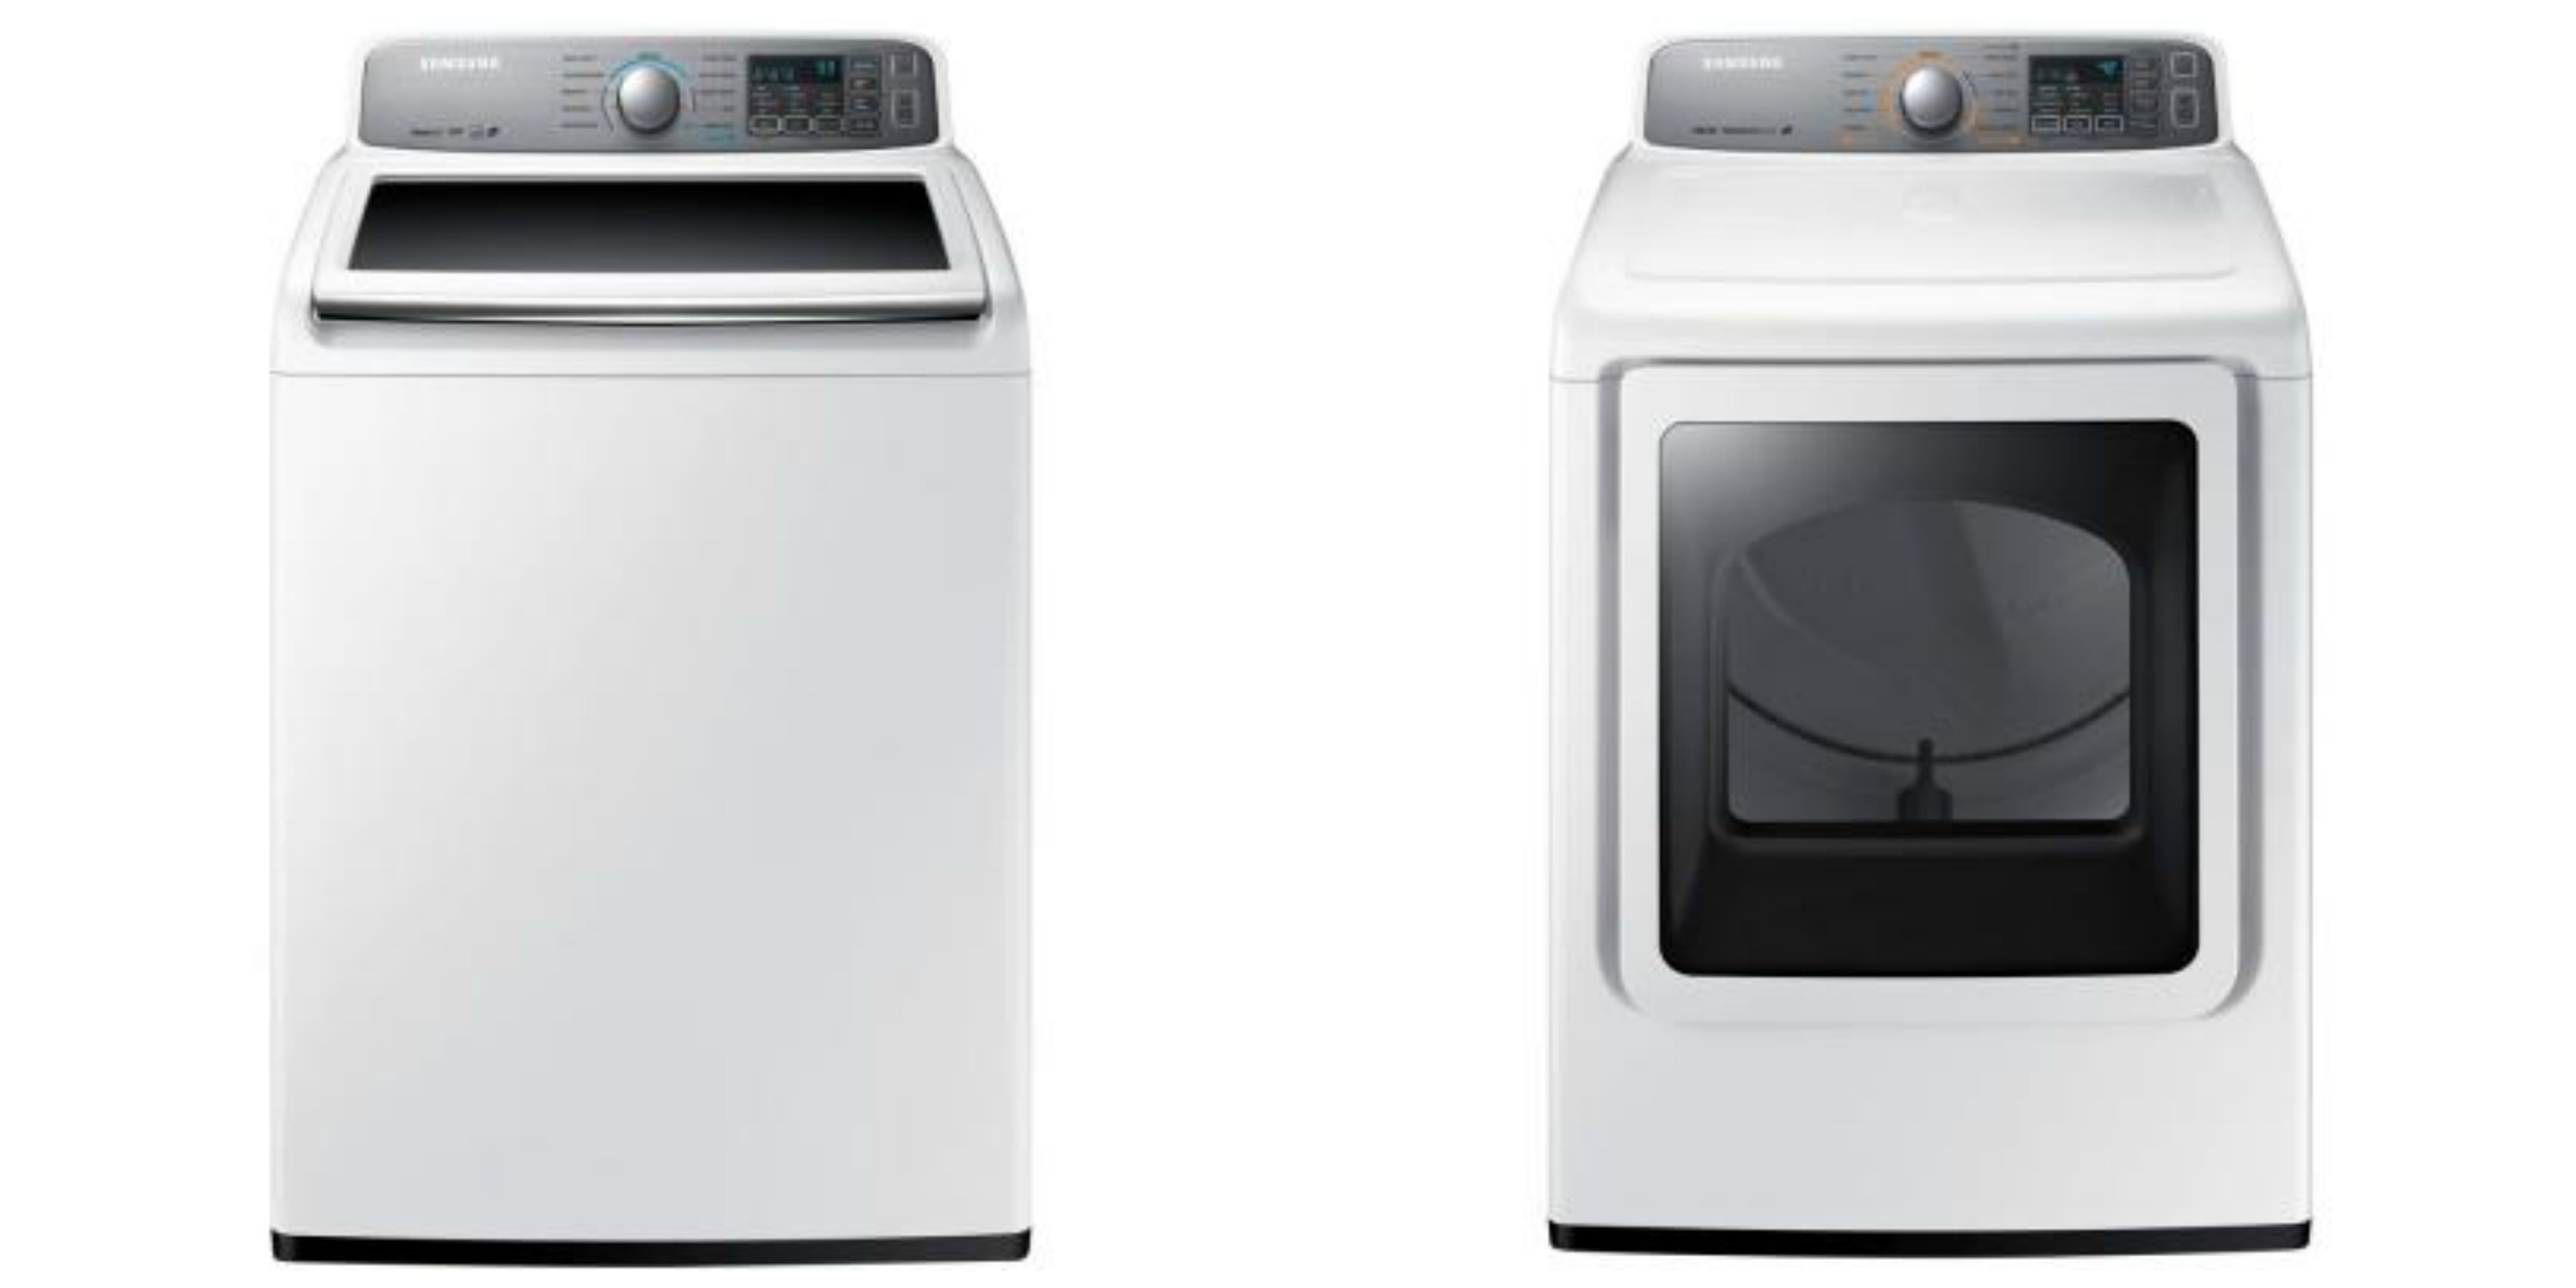 Home Depot Samsung High Efficiency Washer And Dryer Sale Stretching A Buck Stretching A Buck